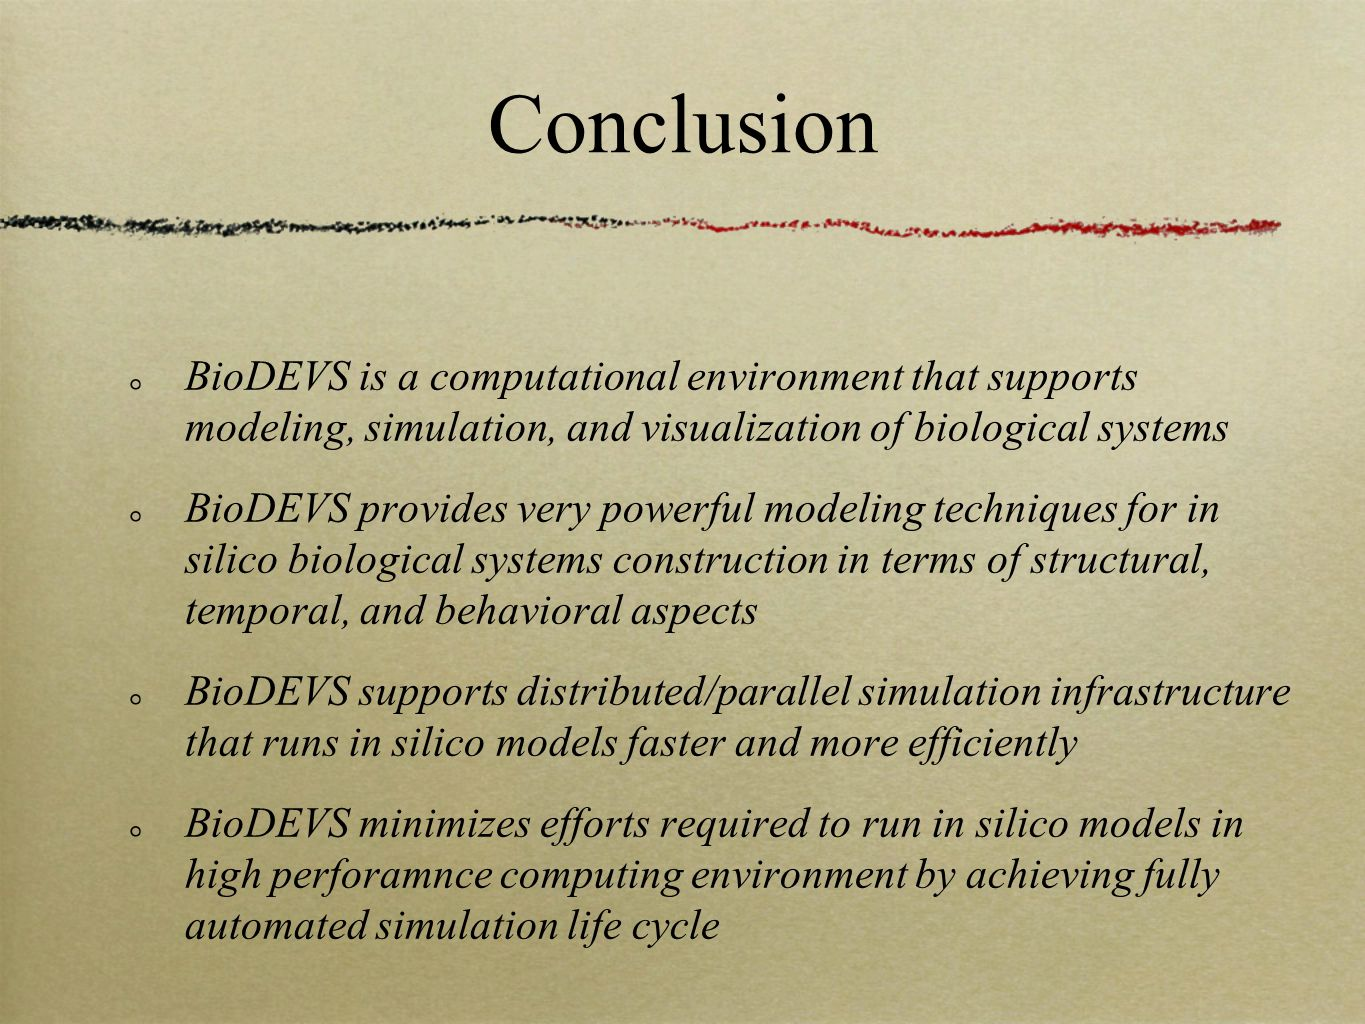 Conclusion BioDEVS is a computational environment that supports modeling, simulation, and visualization of biological systems BioDEVS provides very powerful modeling techniques for in silico biological systems construction in terms of structural, temporal, and behavioral aspects BioDEVS supports distributed/parallel simulation infrastructure that runs in silico models faster and more efficiently BioDEVS minimizes efforts required to run in silico models in high perforamnce computing environment by achieving fully automated simulation life cycle